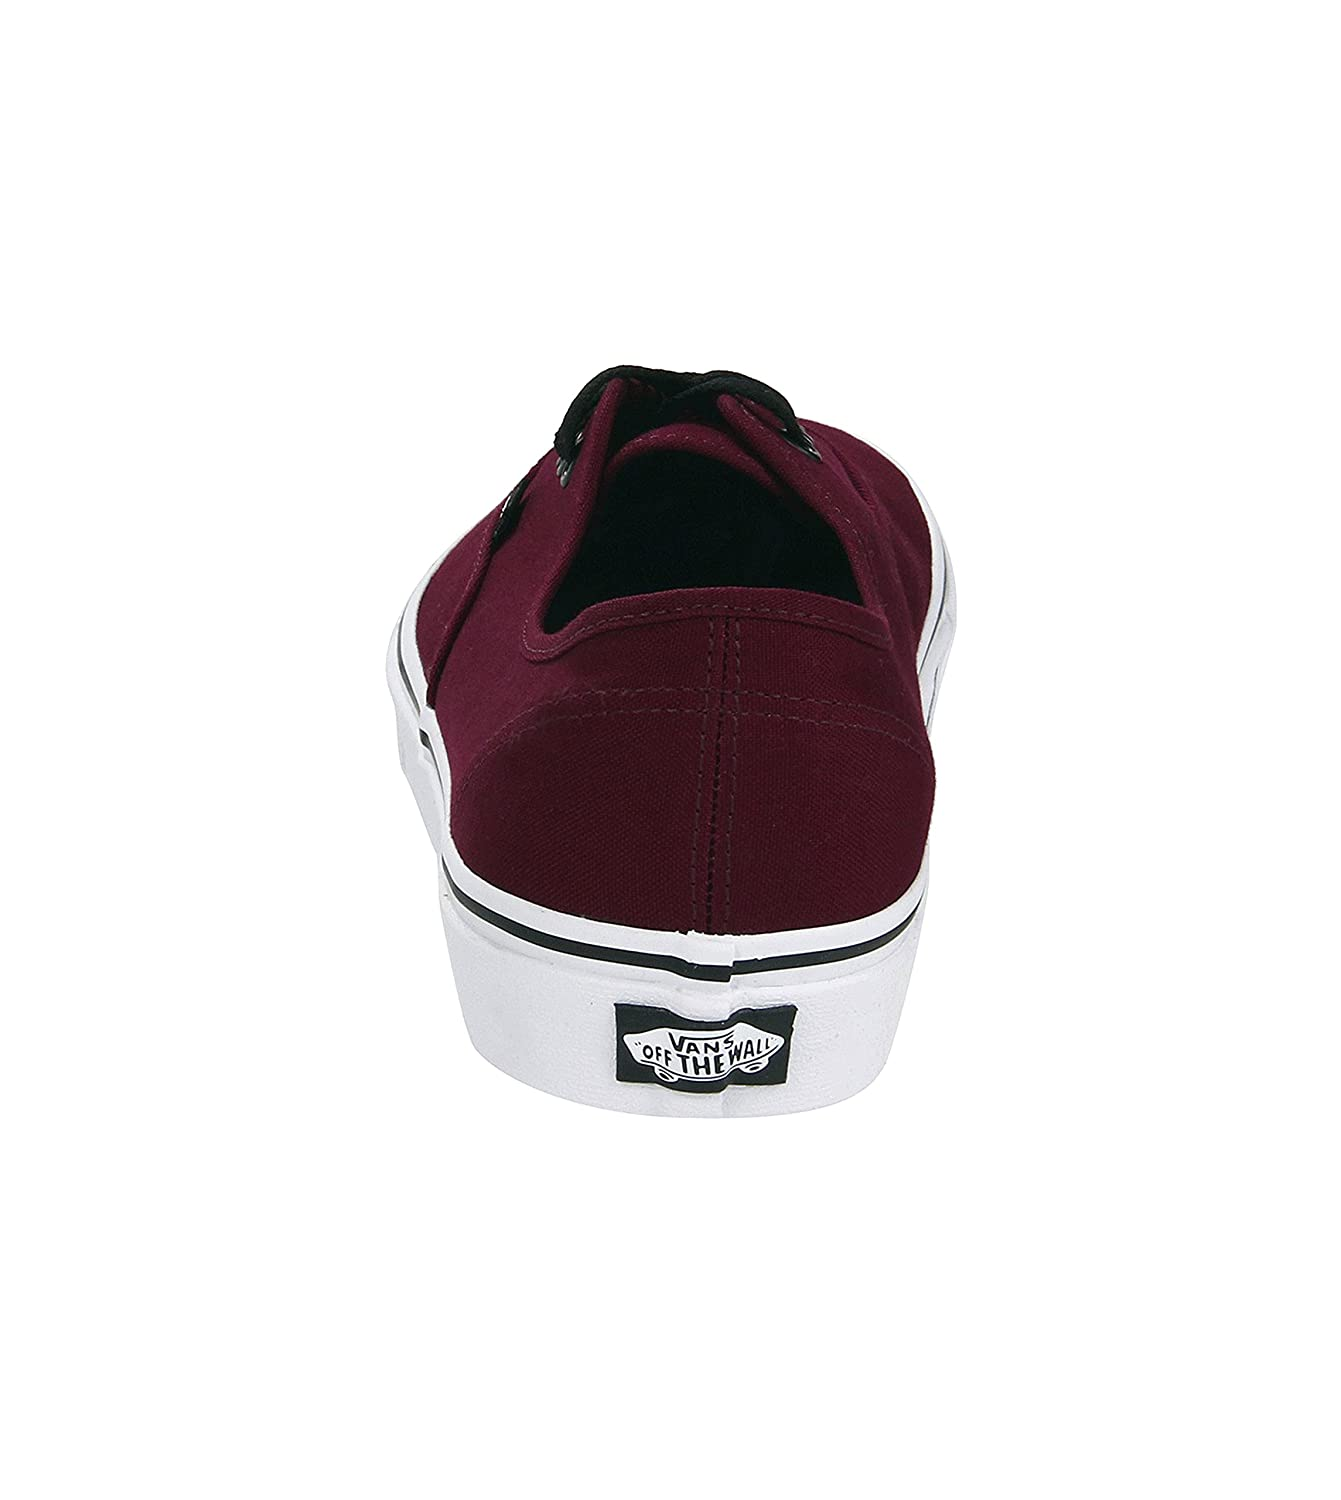 Vans Unisex-Erwachsene Authentic Sneaker Sneaker Authentic Port Royale ae82c7